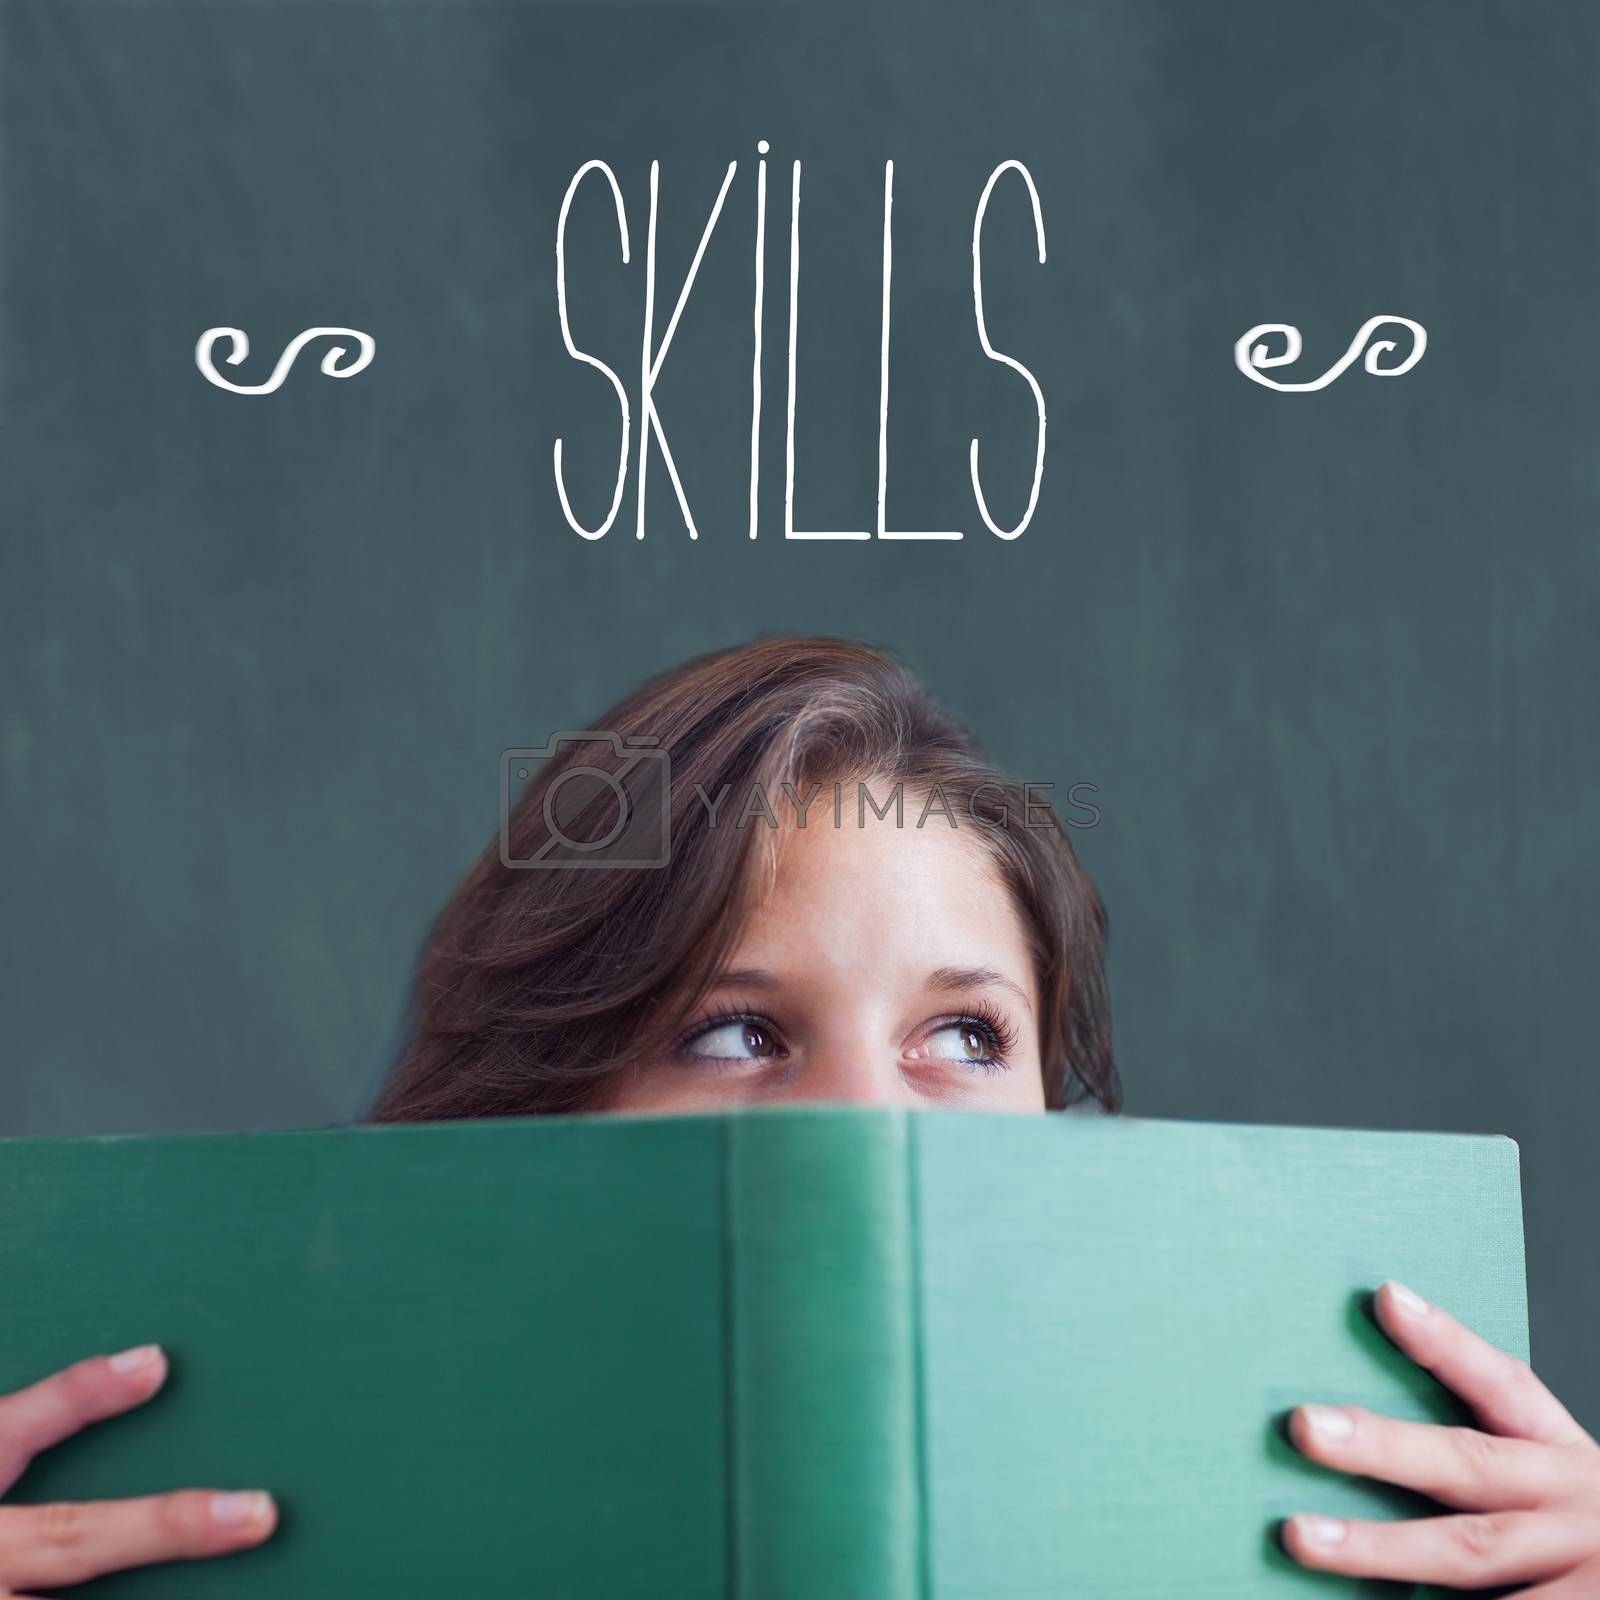 The word skills against student holding book